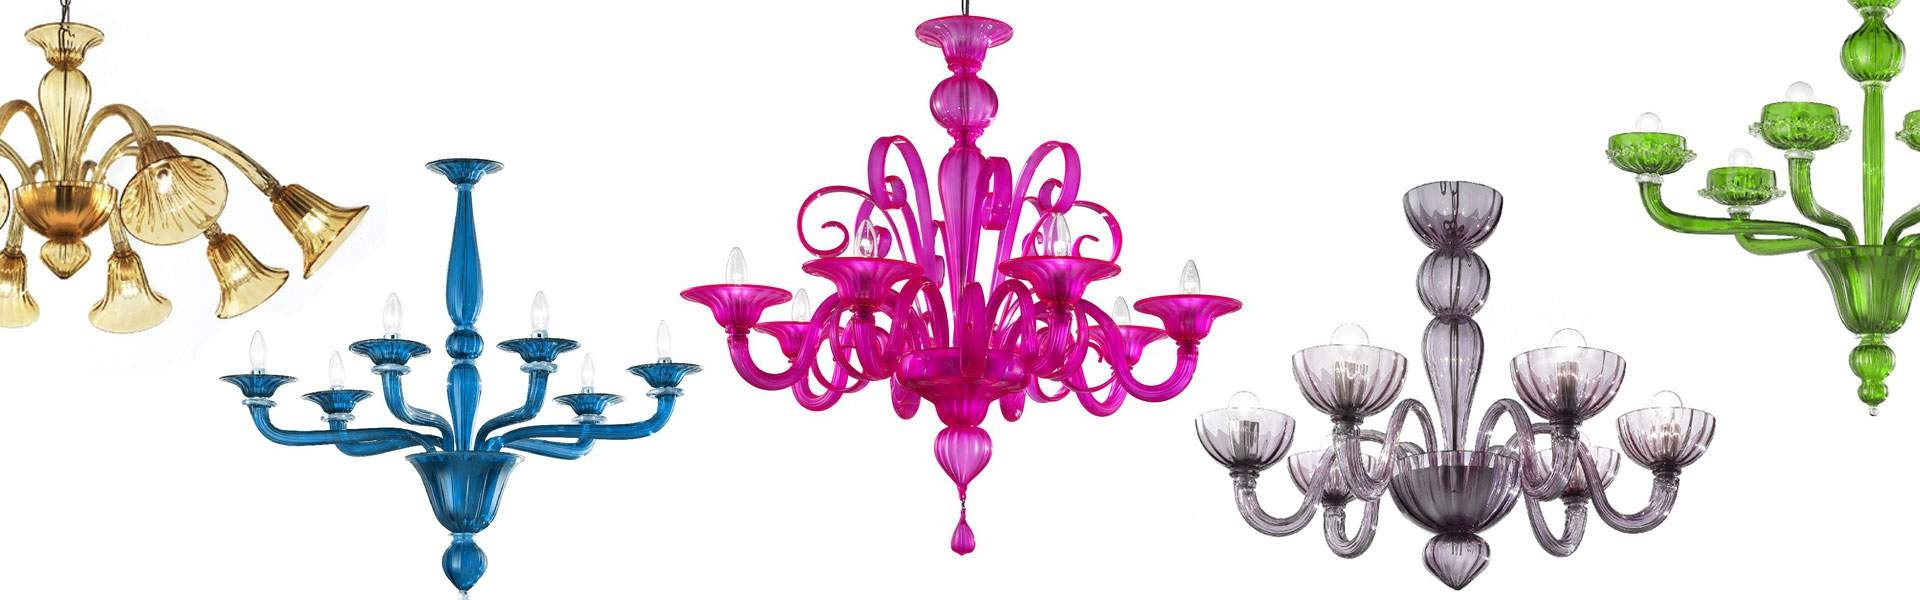 Murano Chandeliers Murano Glass Chandeliers For Sale From Italy Throughout Coloured Glass Chandelier (Image 9 of 15)